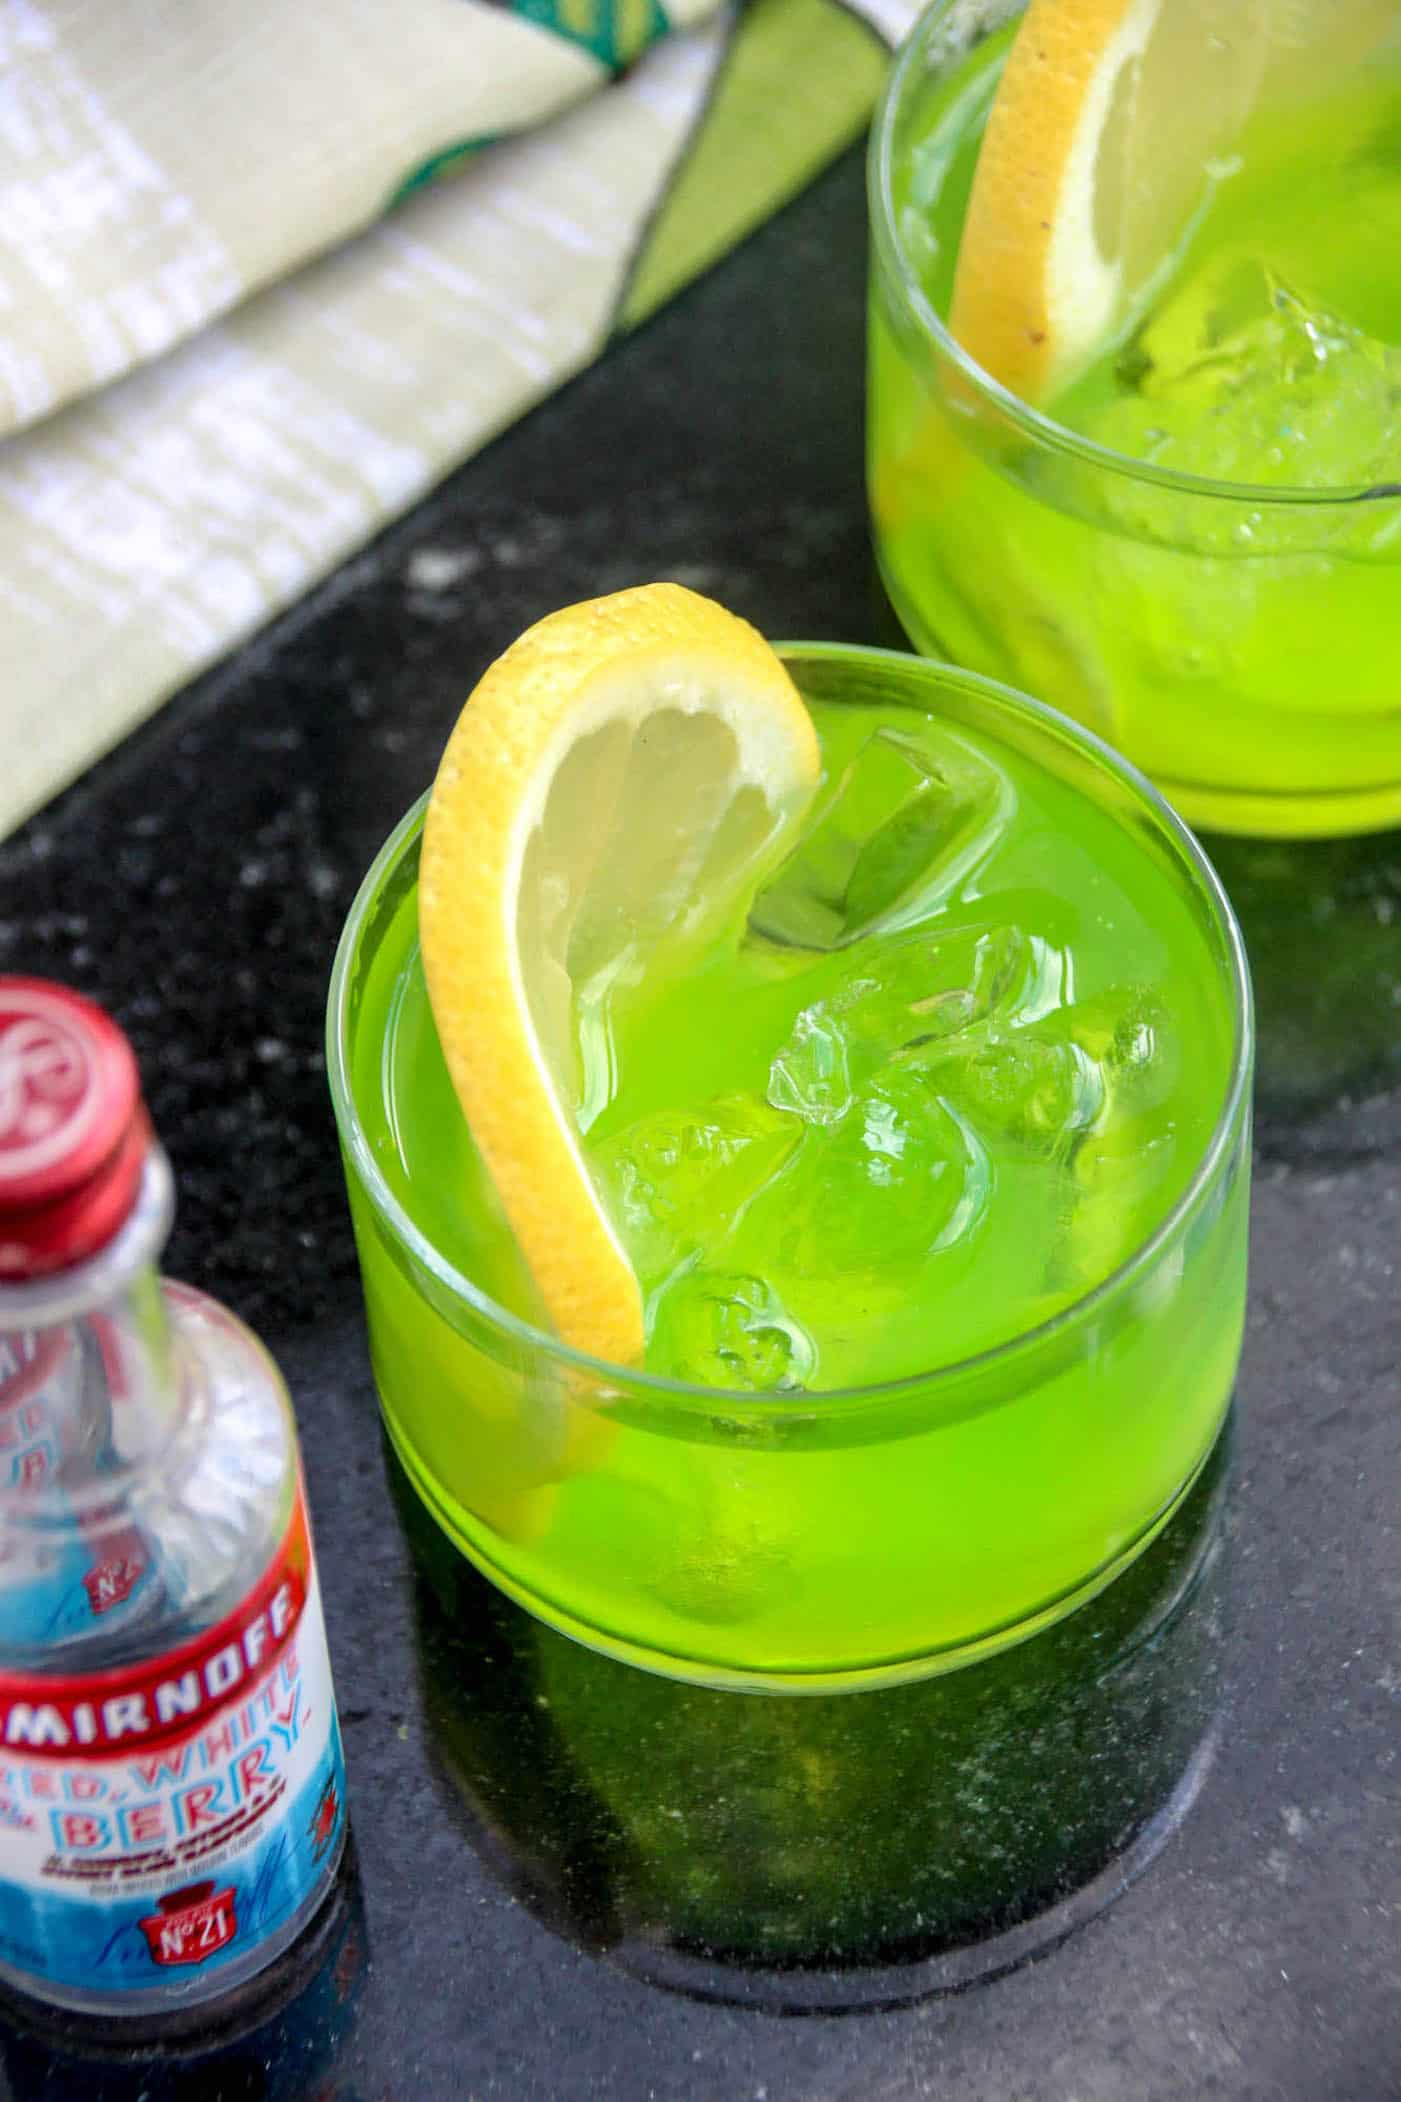 Ectoplasm has never been this delicious! These Ghostbusters Slimer themed vodka cocktails are so fun - and tasty too. Make for a movie watching party!